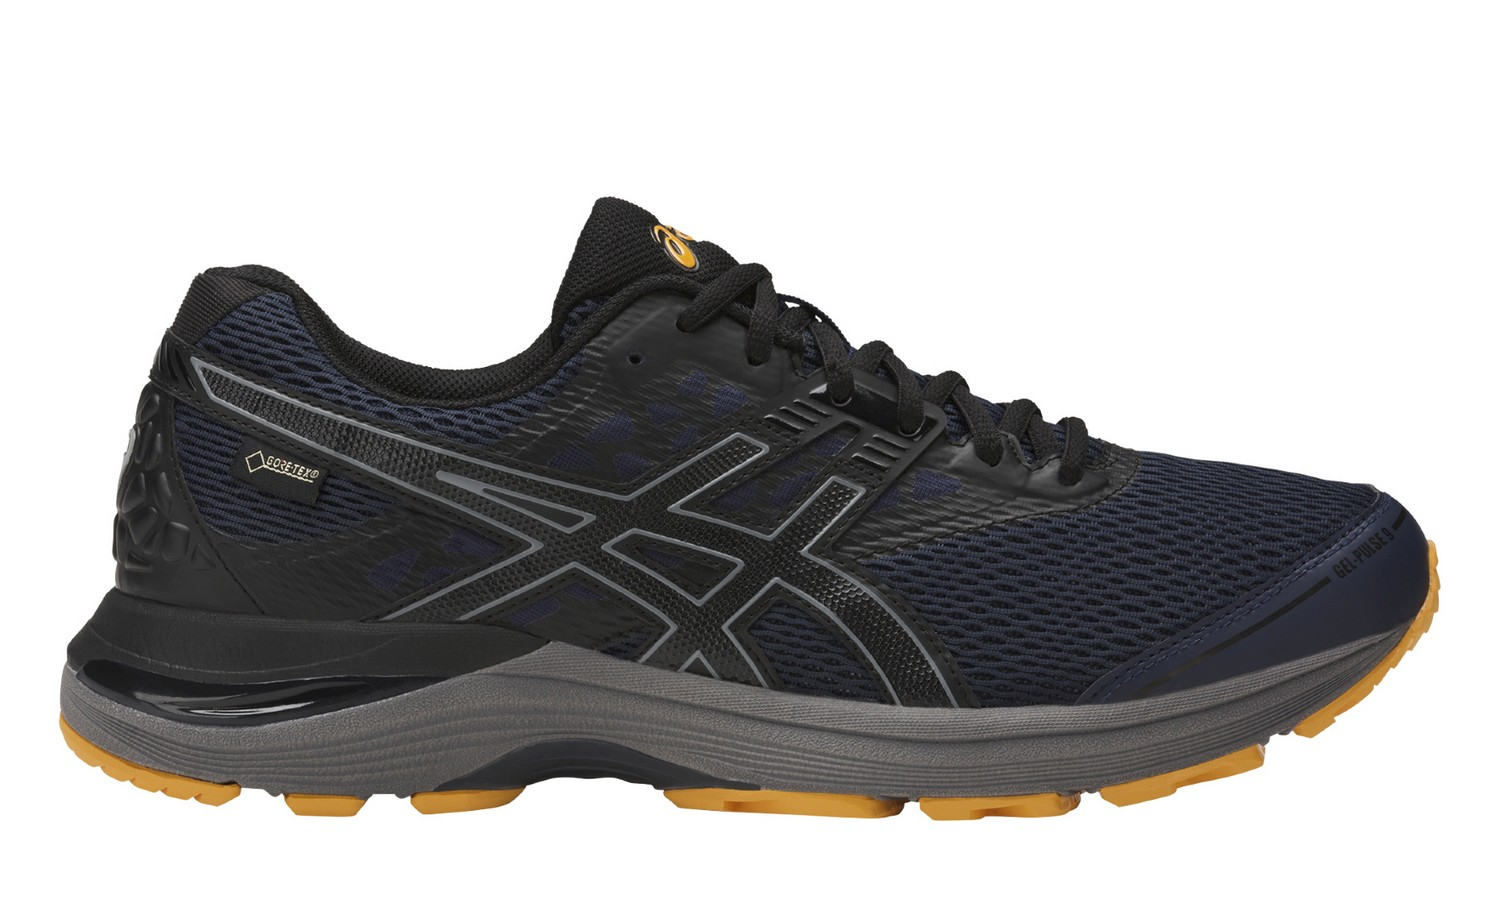 Asics GEL-PULSE 9 G-TX M - Peacoat / Black / Gold Fusion